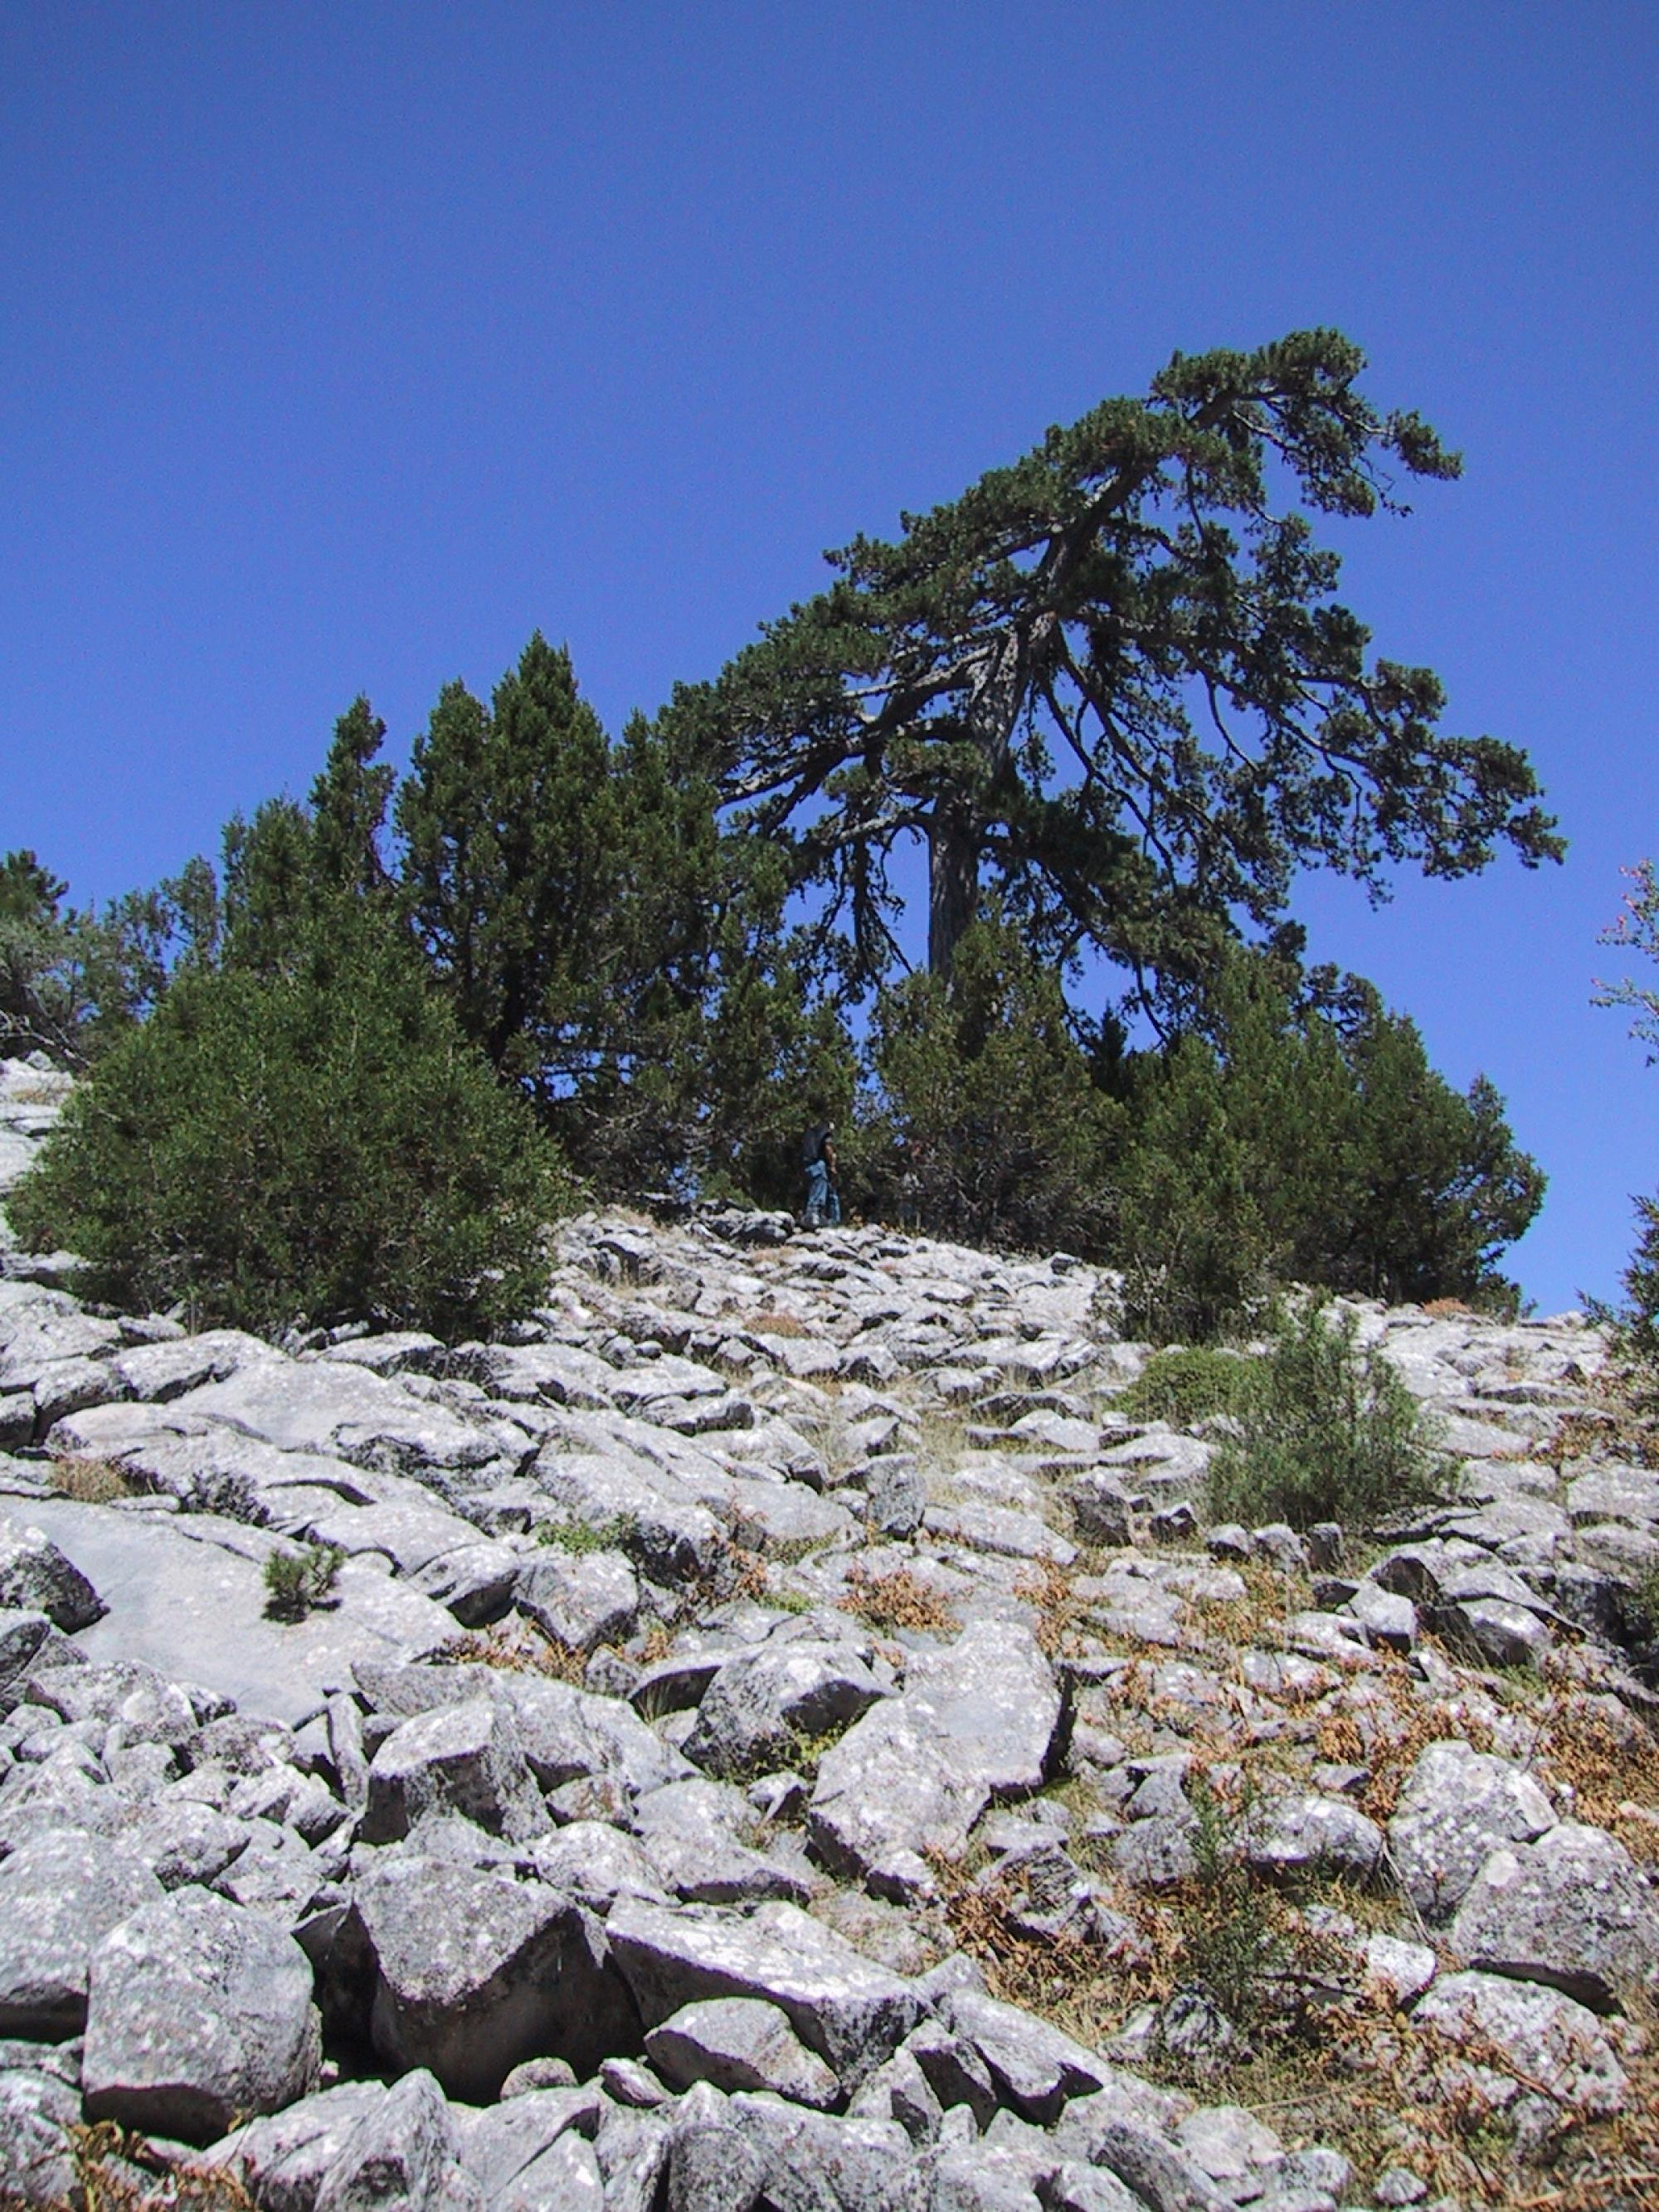 The annual rings of centuries-old black pines  such as this one in Anatolia, Turkey, provide natural archives of past climate.